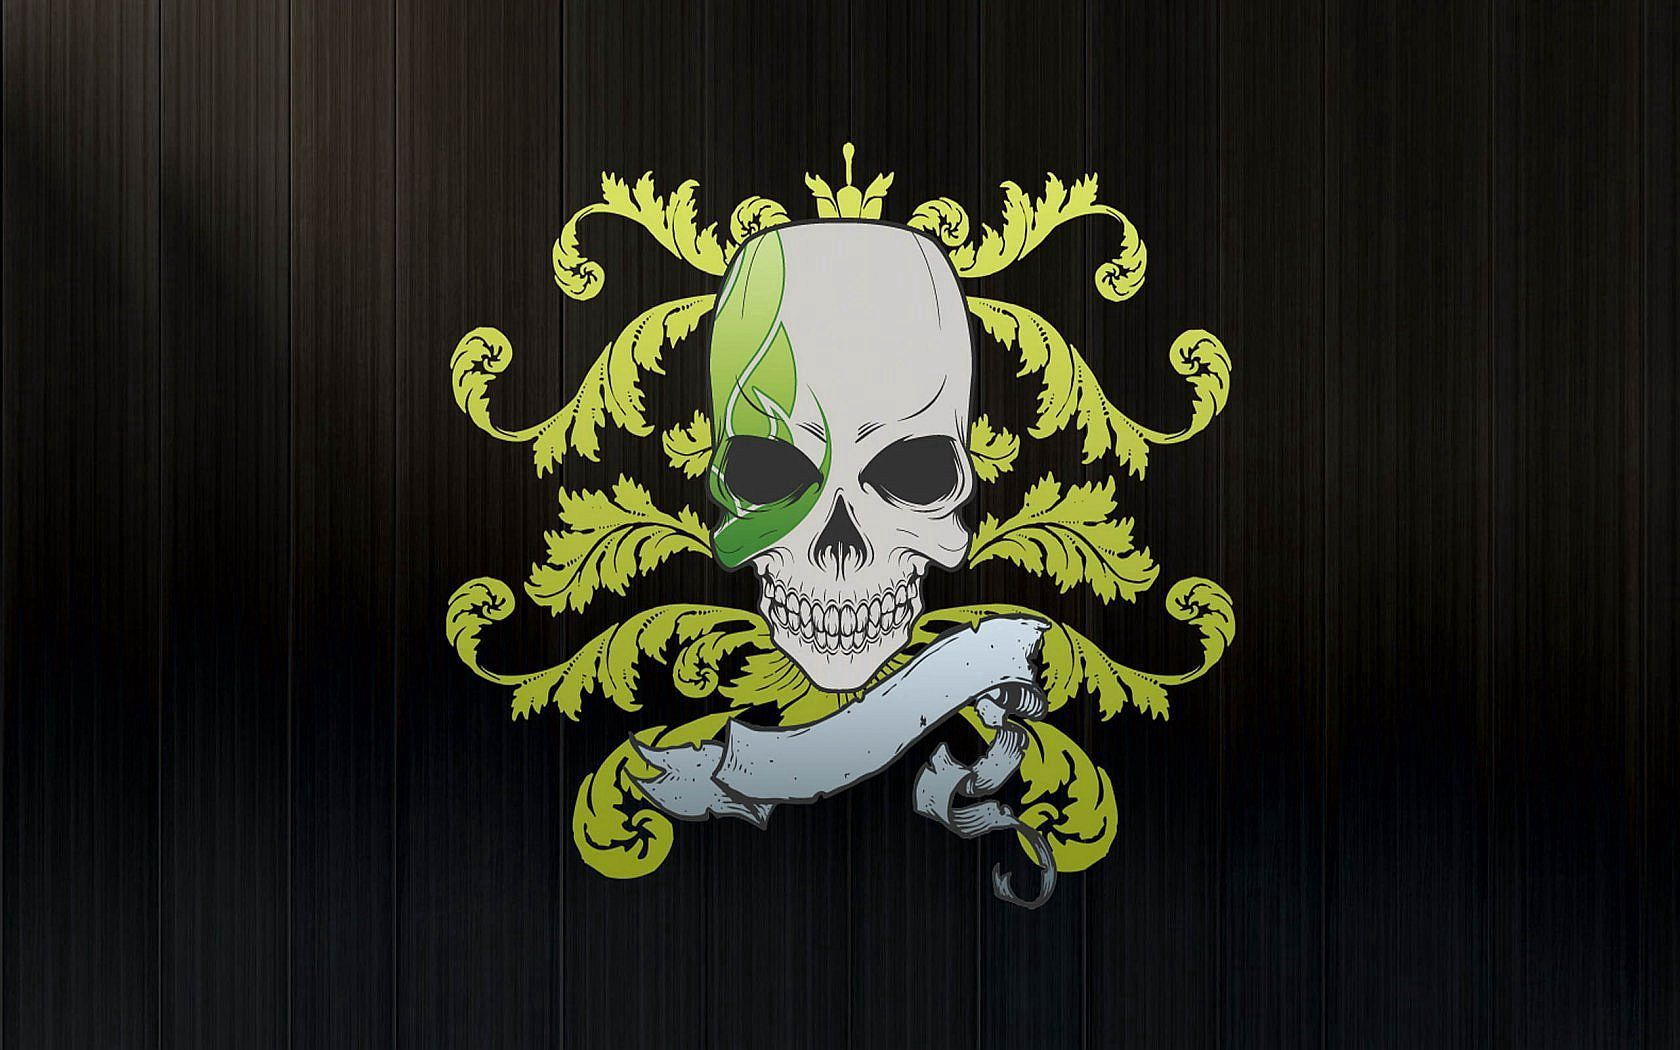 81984 free wallpaper 720x1280 for phone, download images Vector, Graphics, Skull, Symbolism 720x1280 for mobile